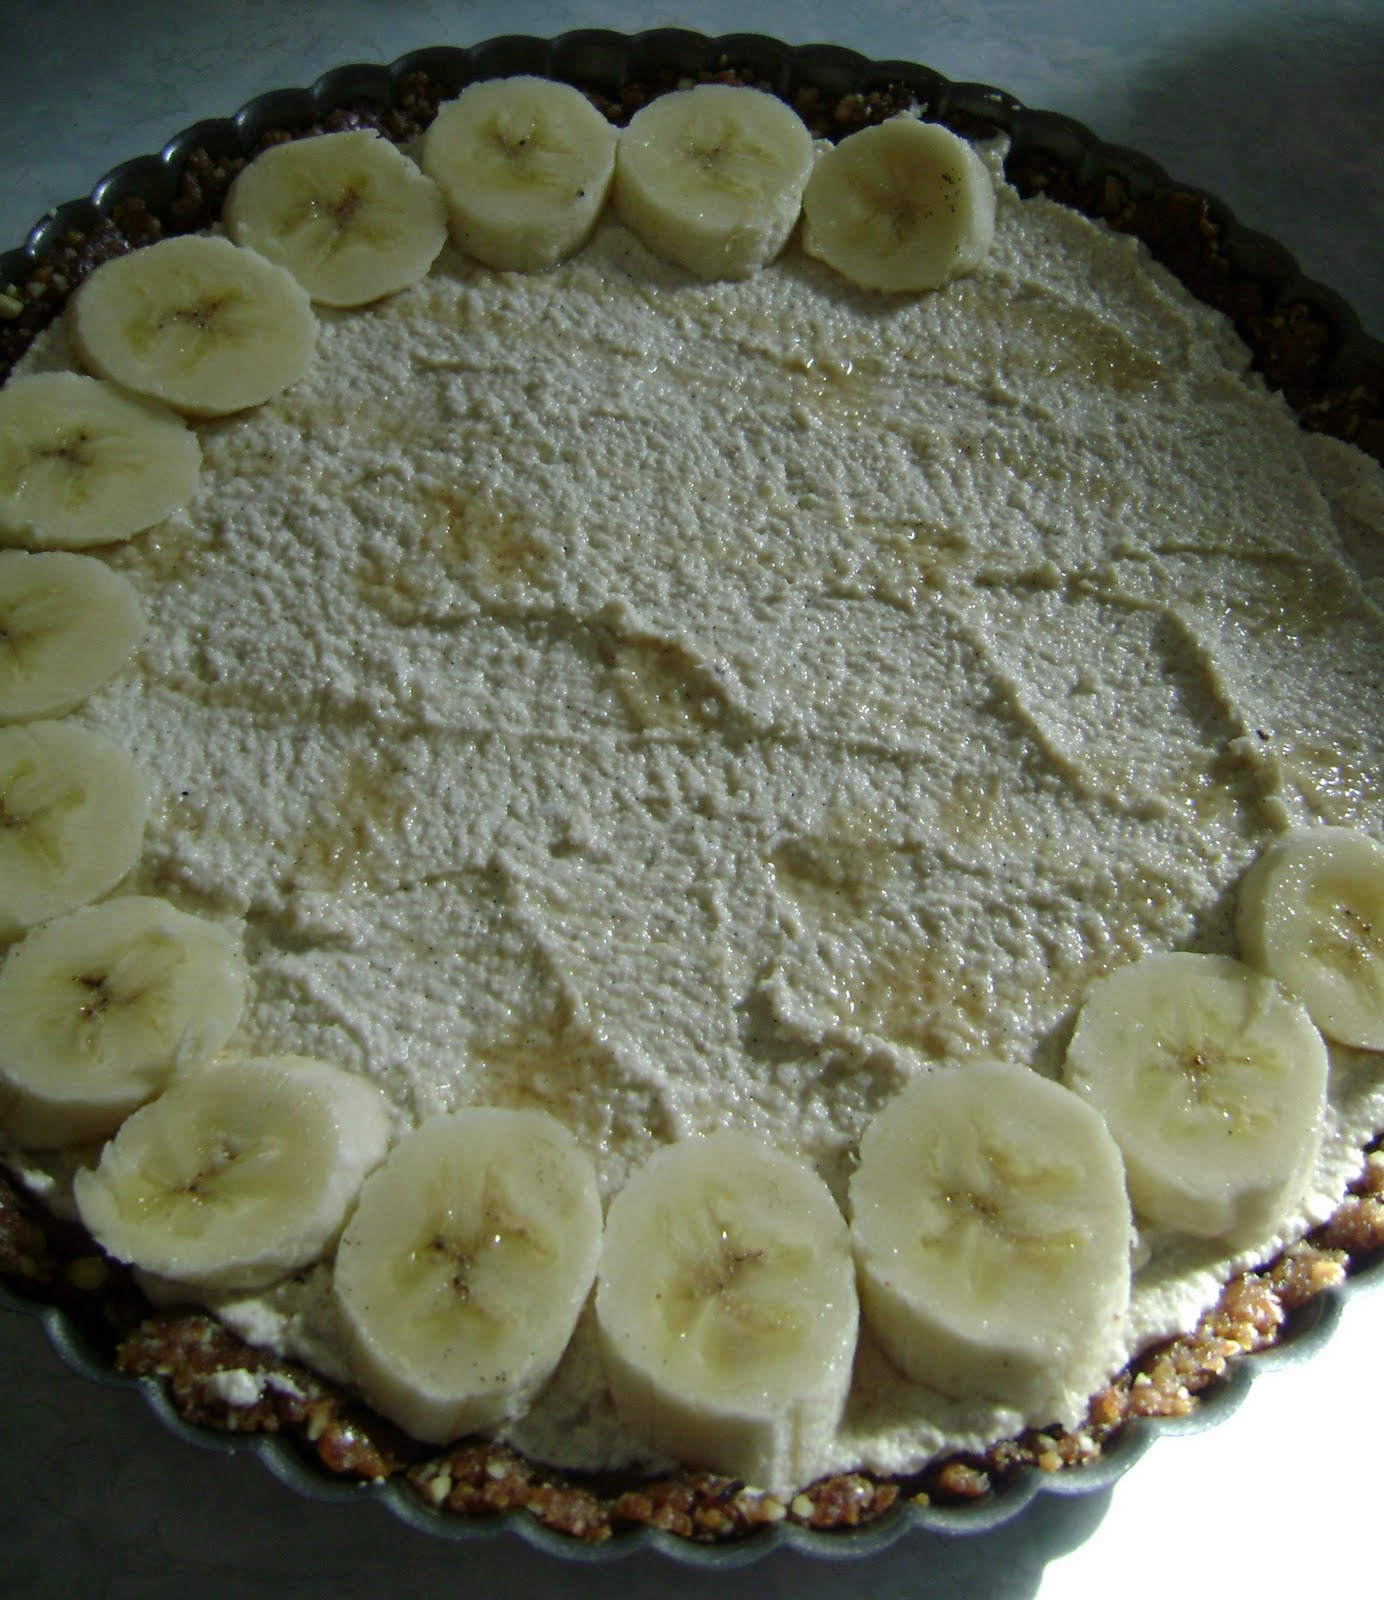 Layering the bananas over the cashew cream, which I had drizzled with ...